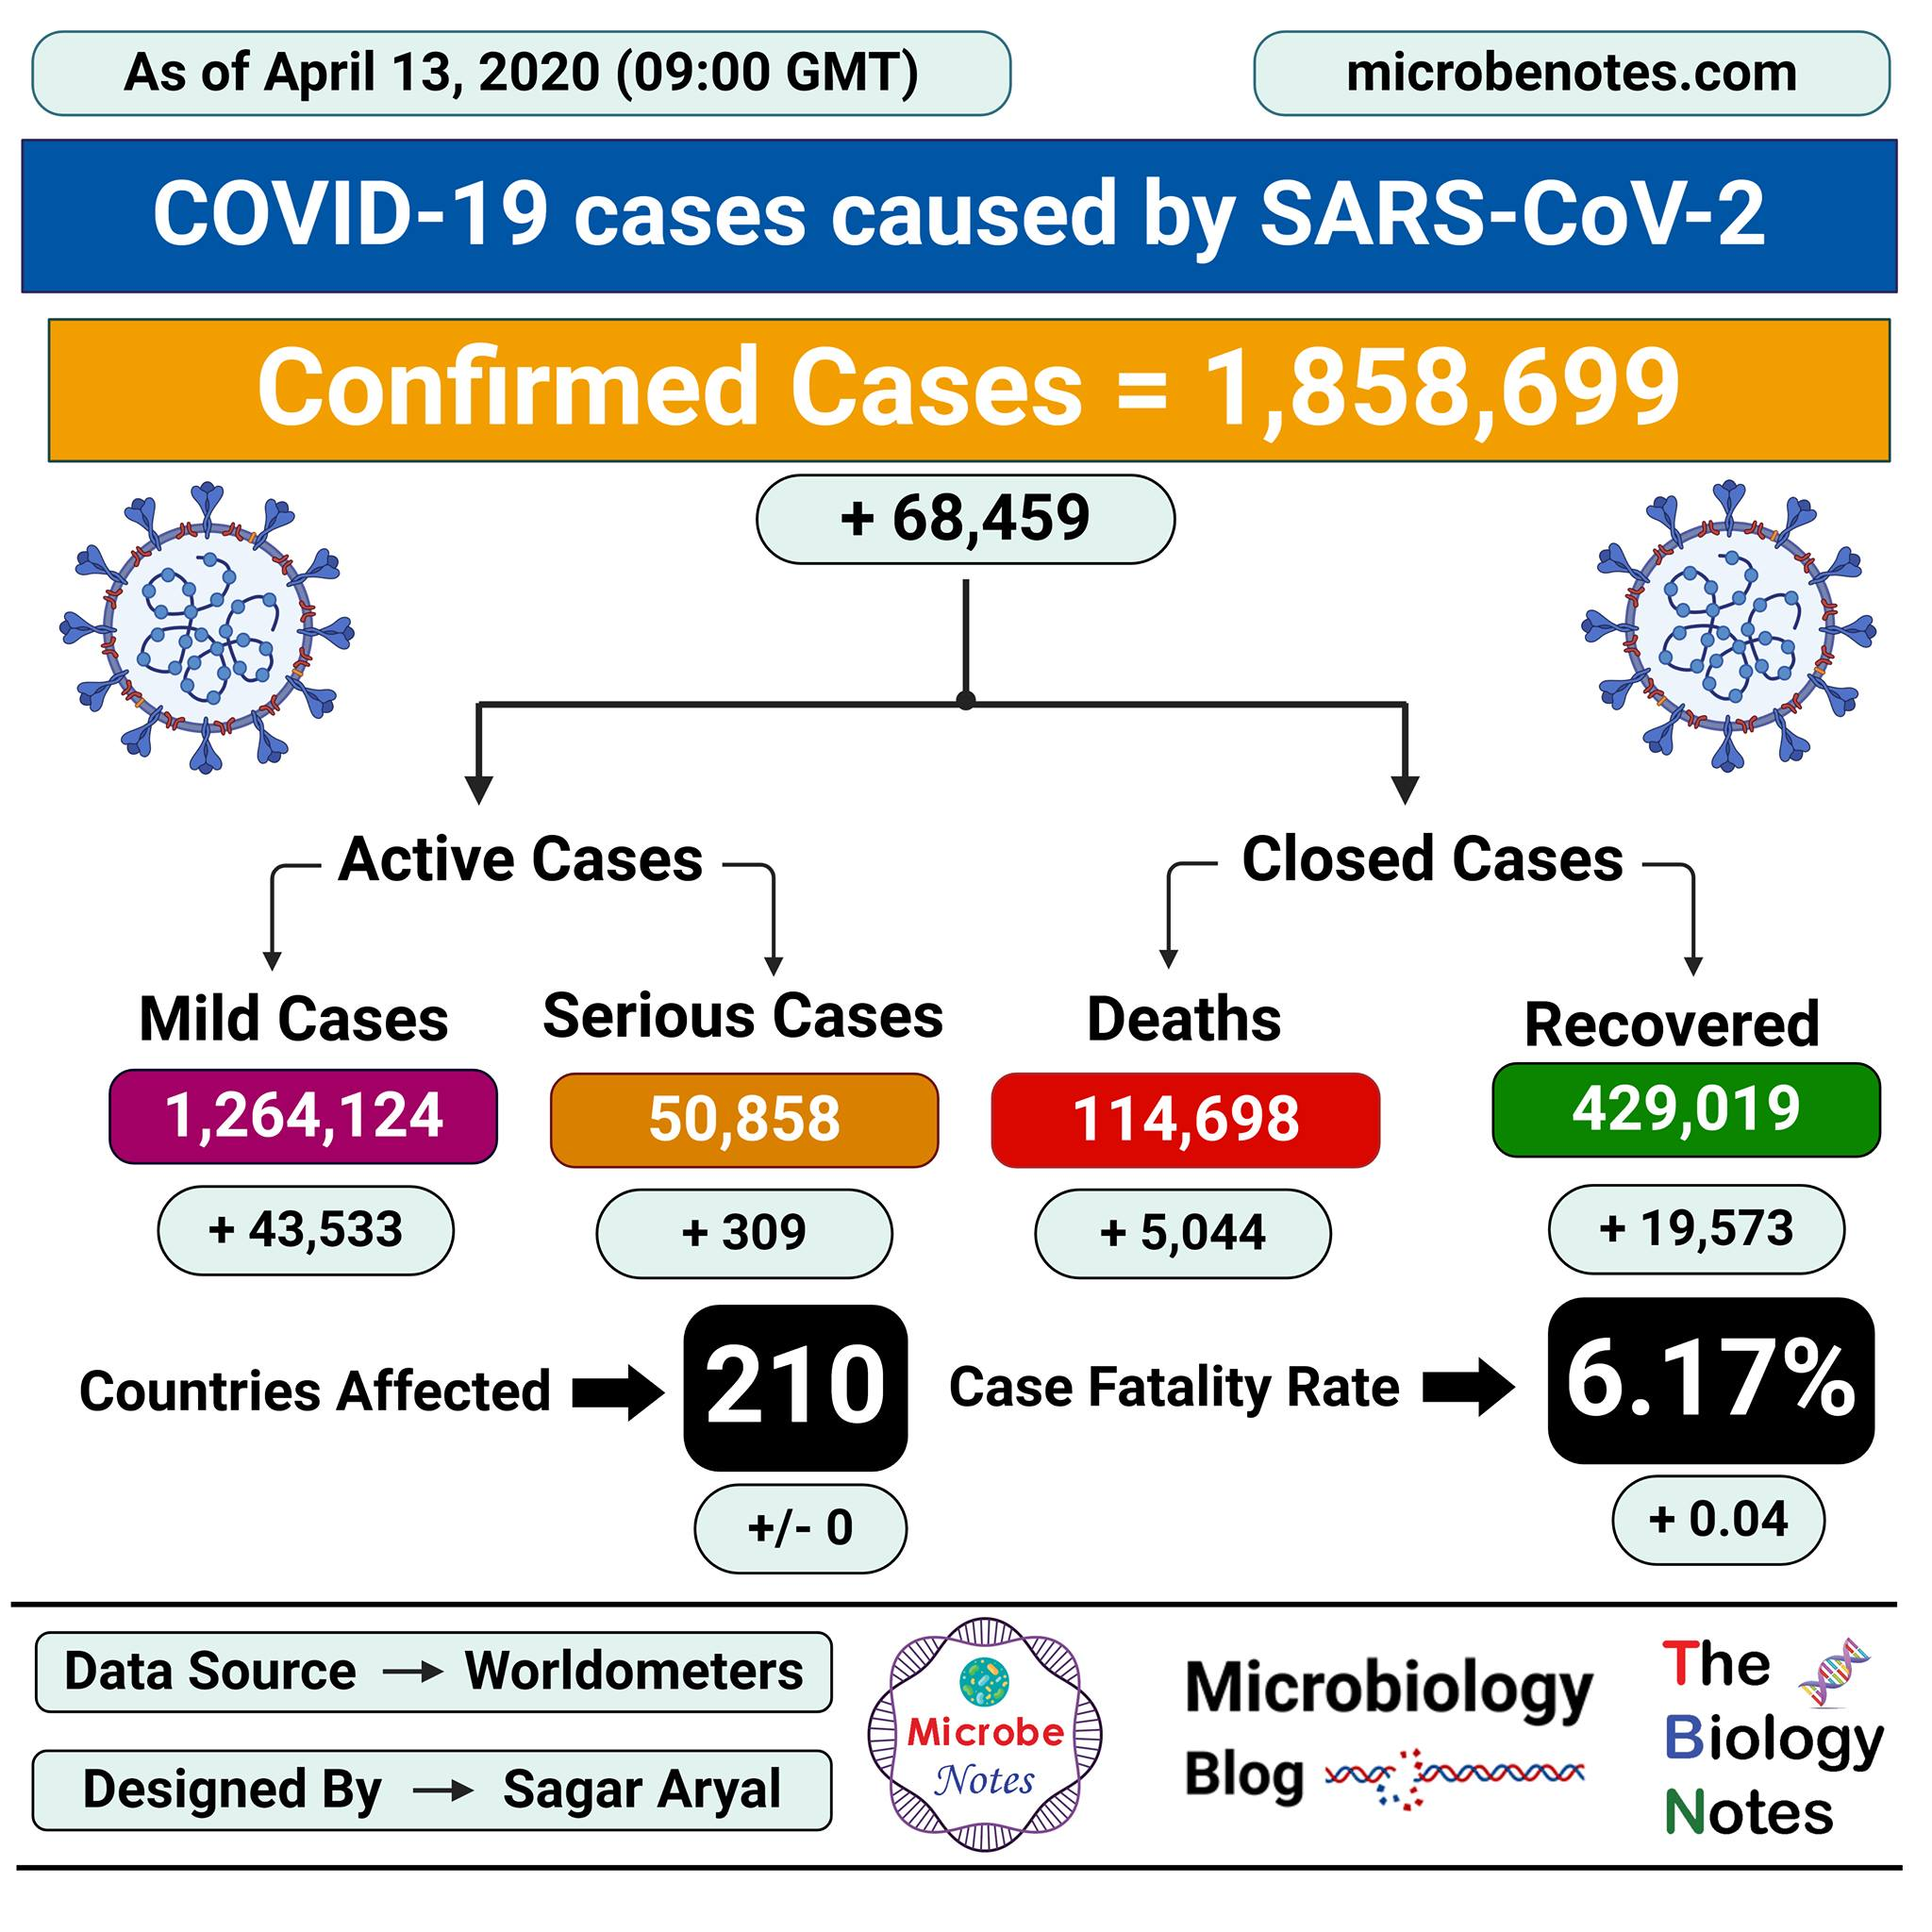 Epidemiology of COVID-19 caused by SARS-CoV-2 as of April 13, 2020